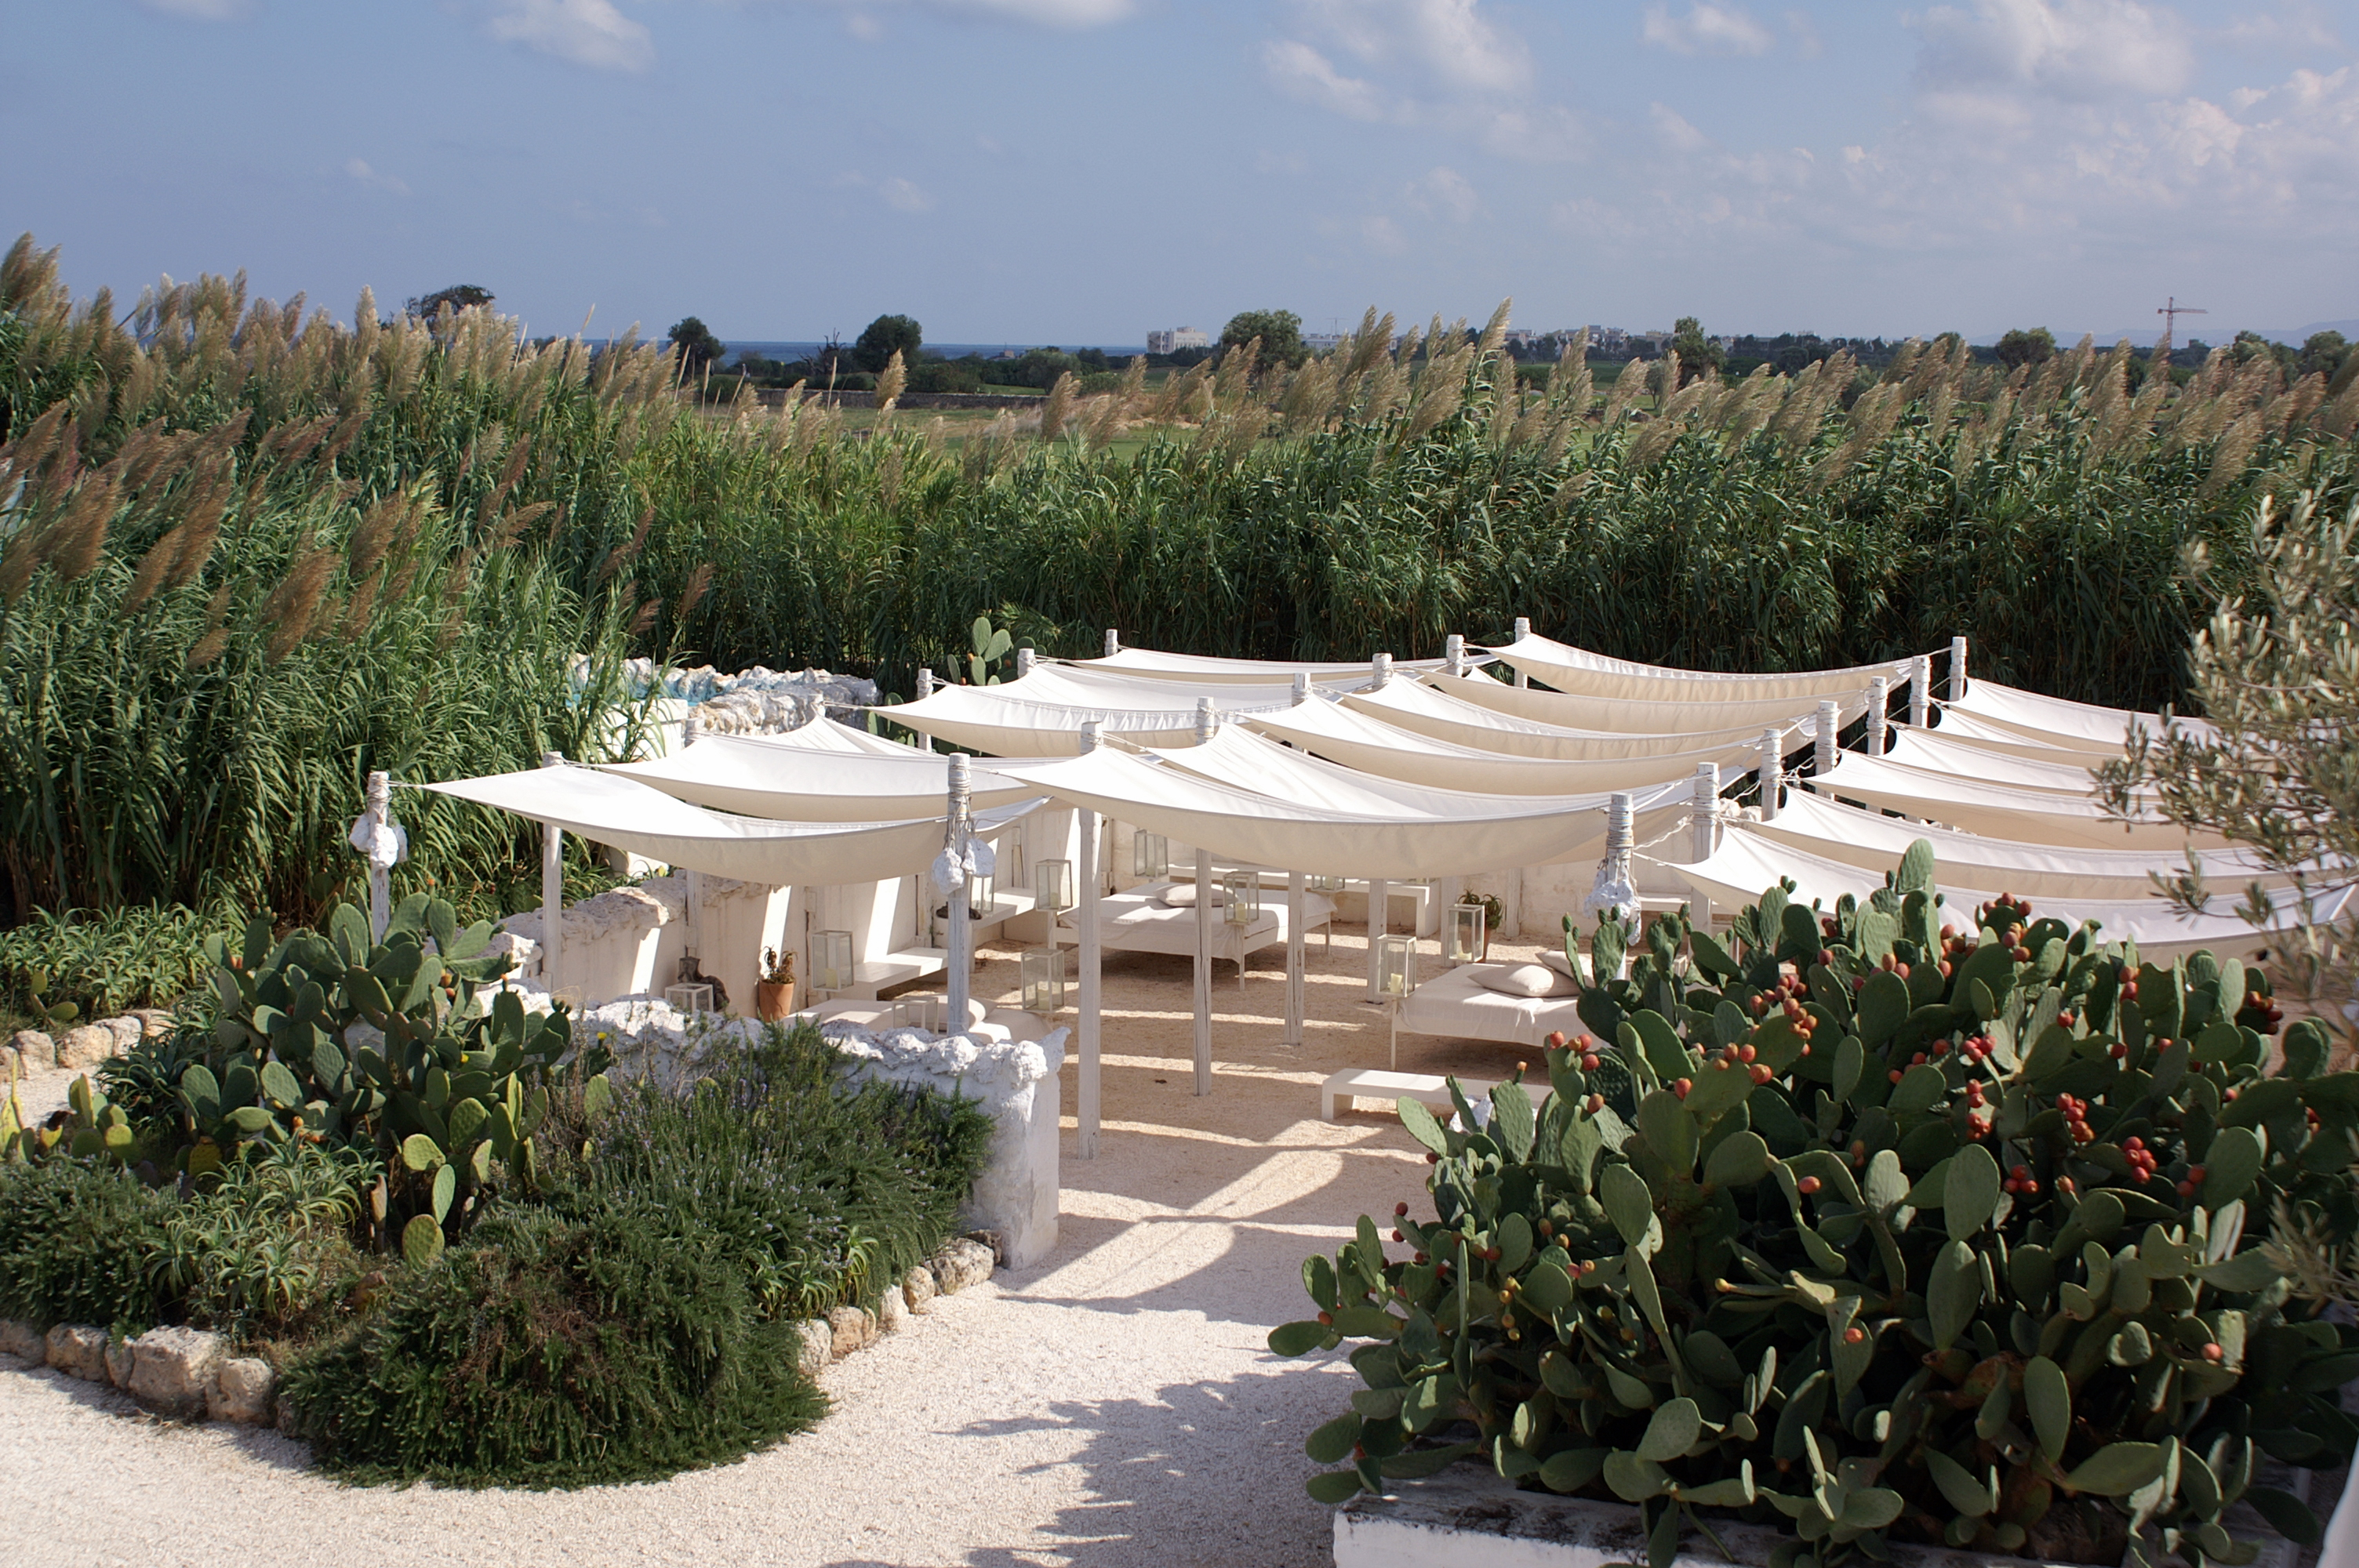 Patio at Masseria Cimino, Puglia, Italy